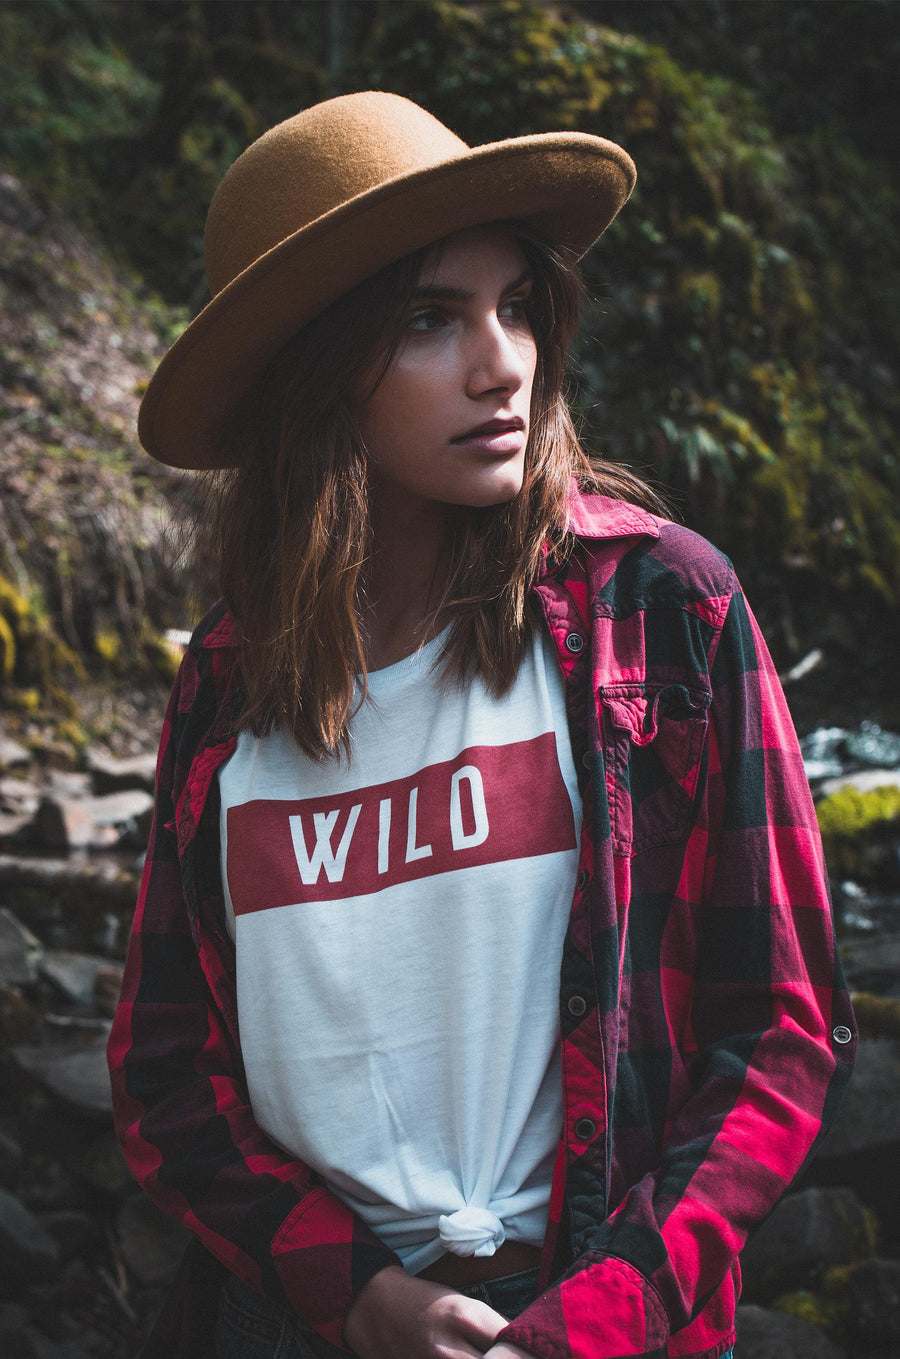 WILD Muscle Tank - Wondery, A Parks Apparel Brand